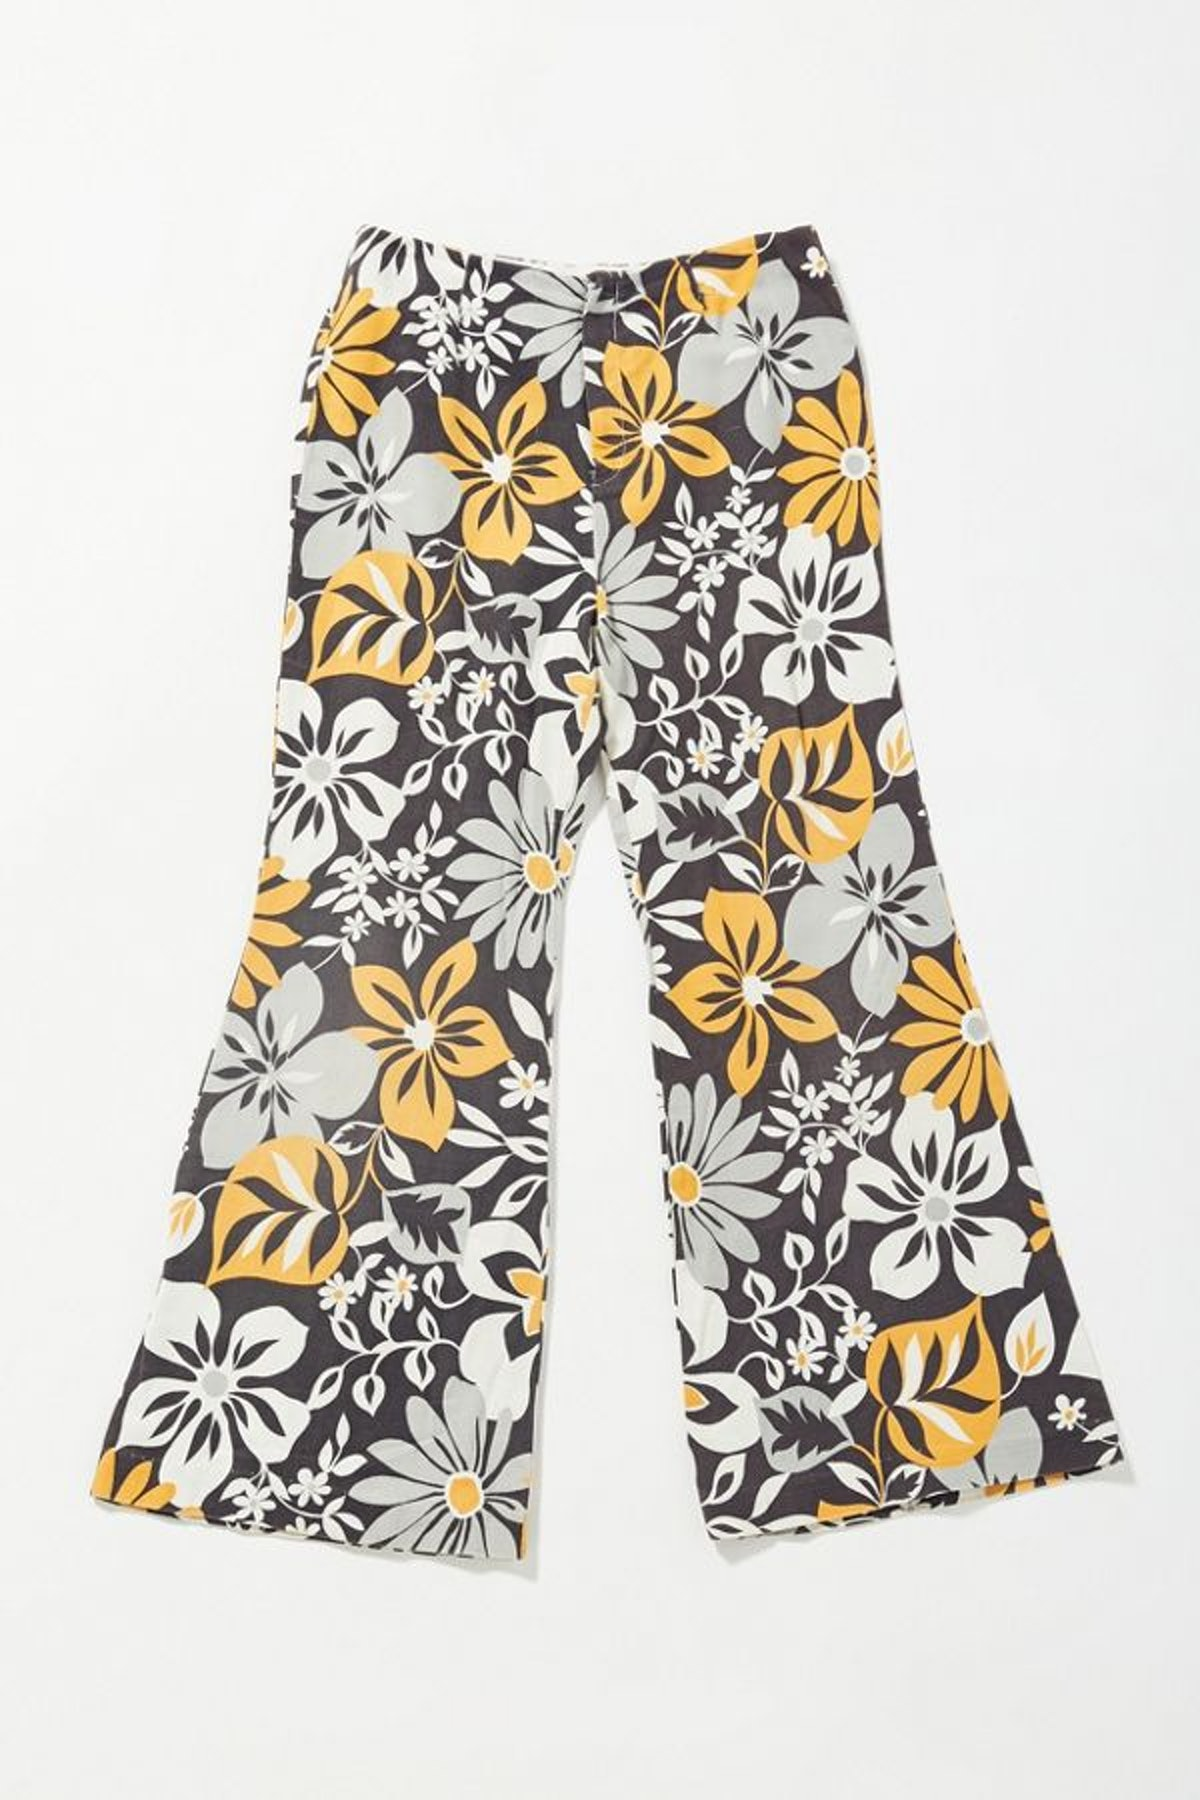 Urban Outfitters Vintage Floral Trouser Pant